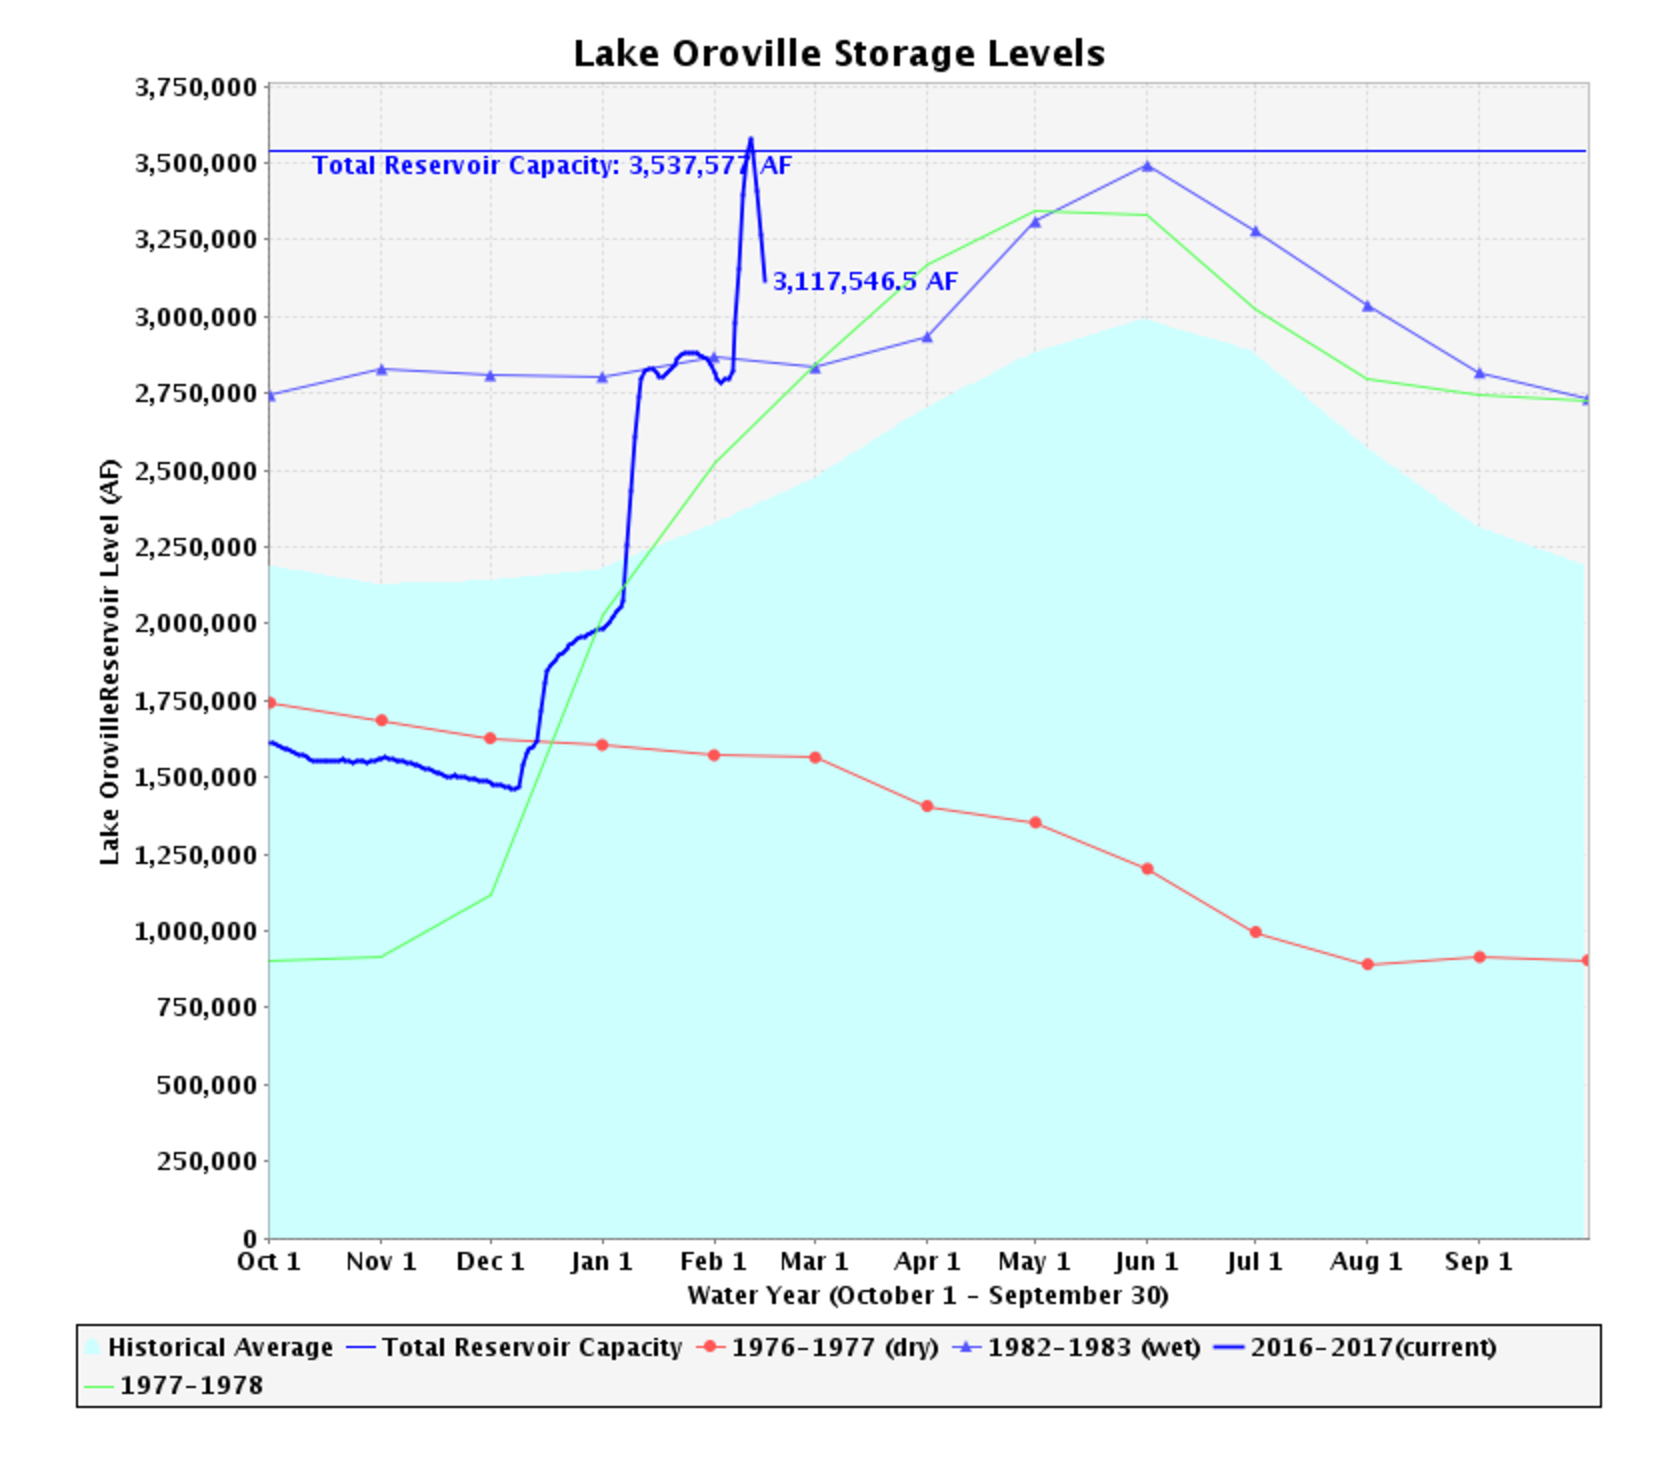 https://cdn2.hubspot.net/hubfs/604407/blog-files/Oroville_Feb15.png